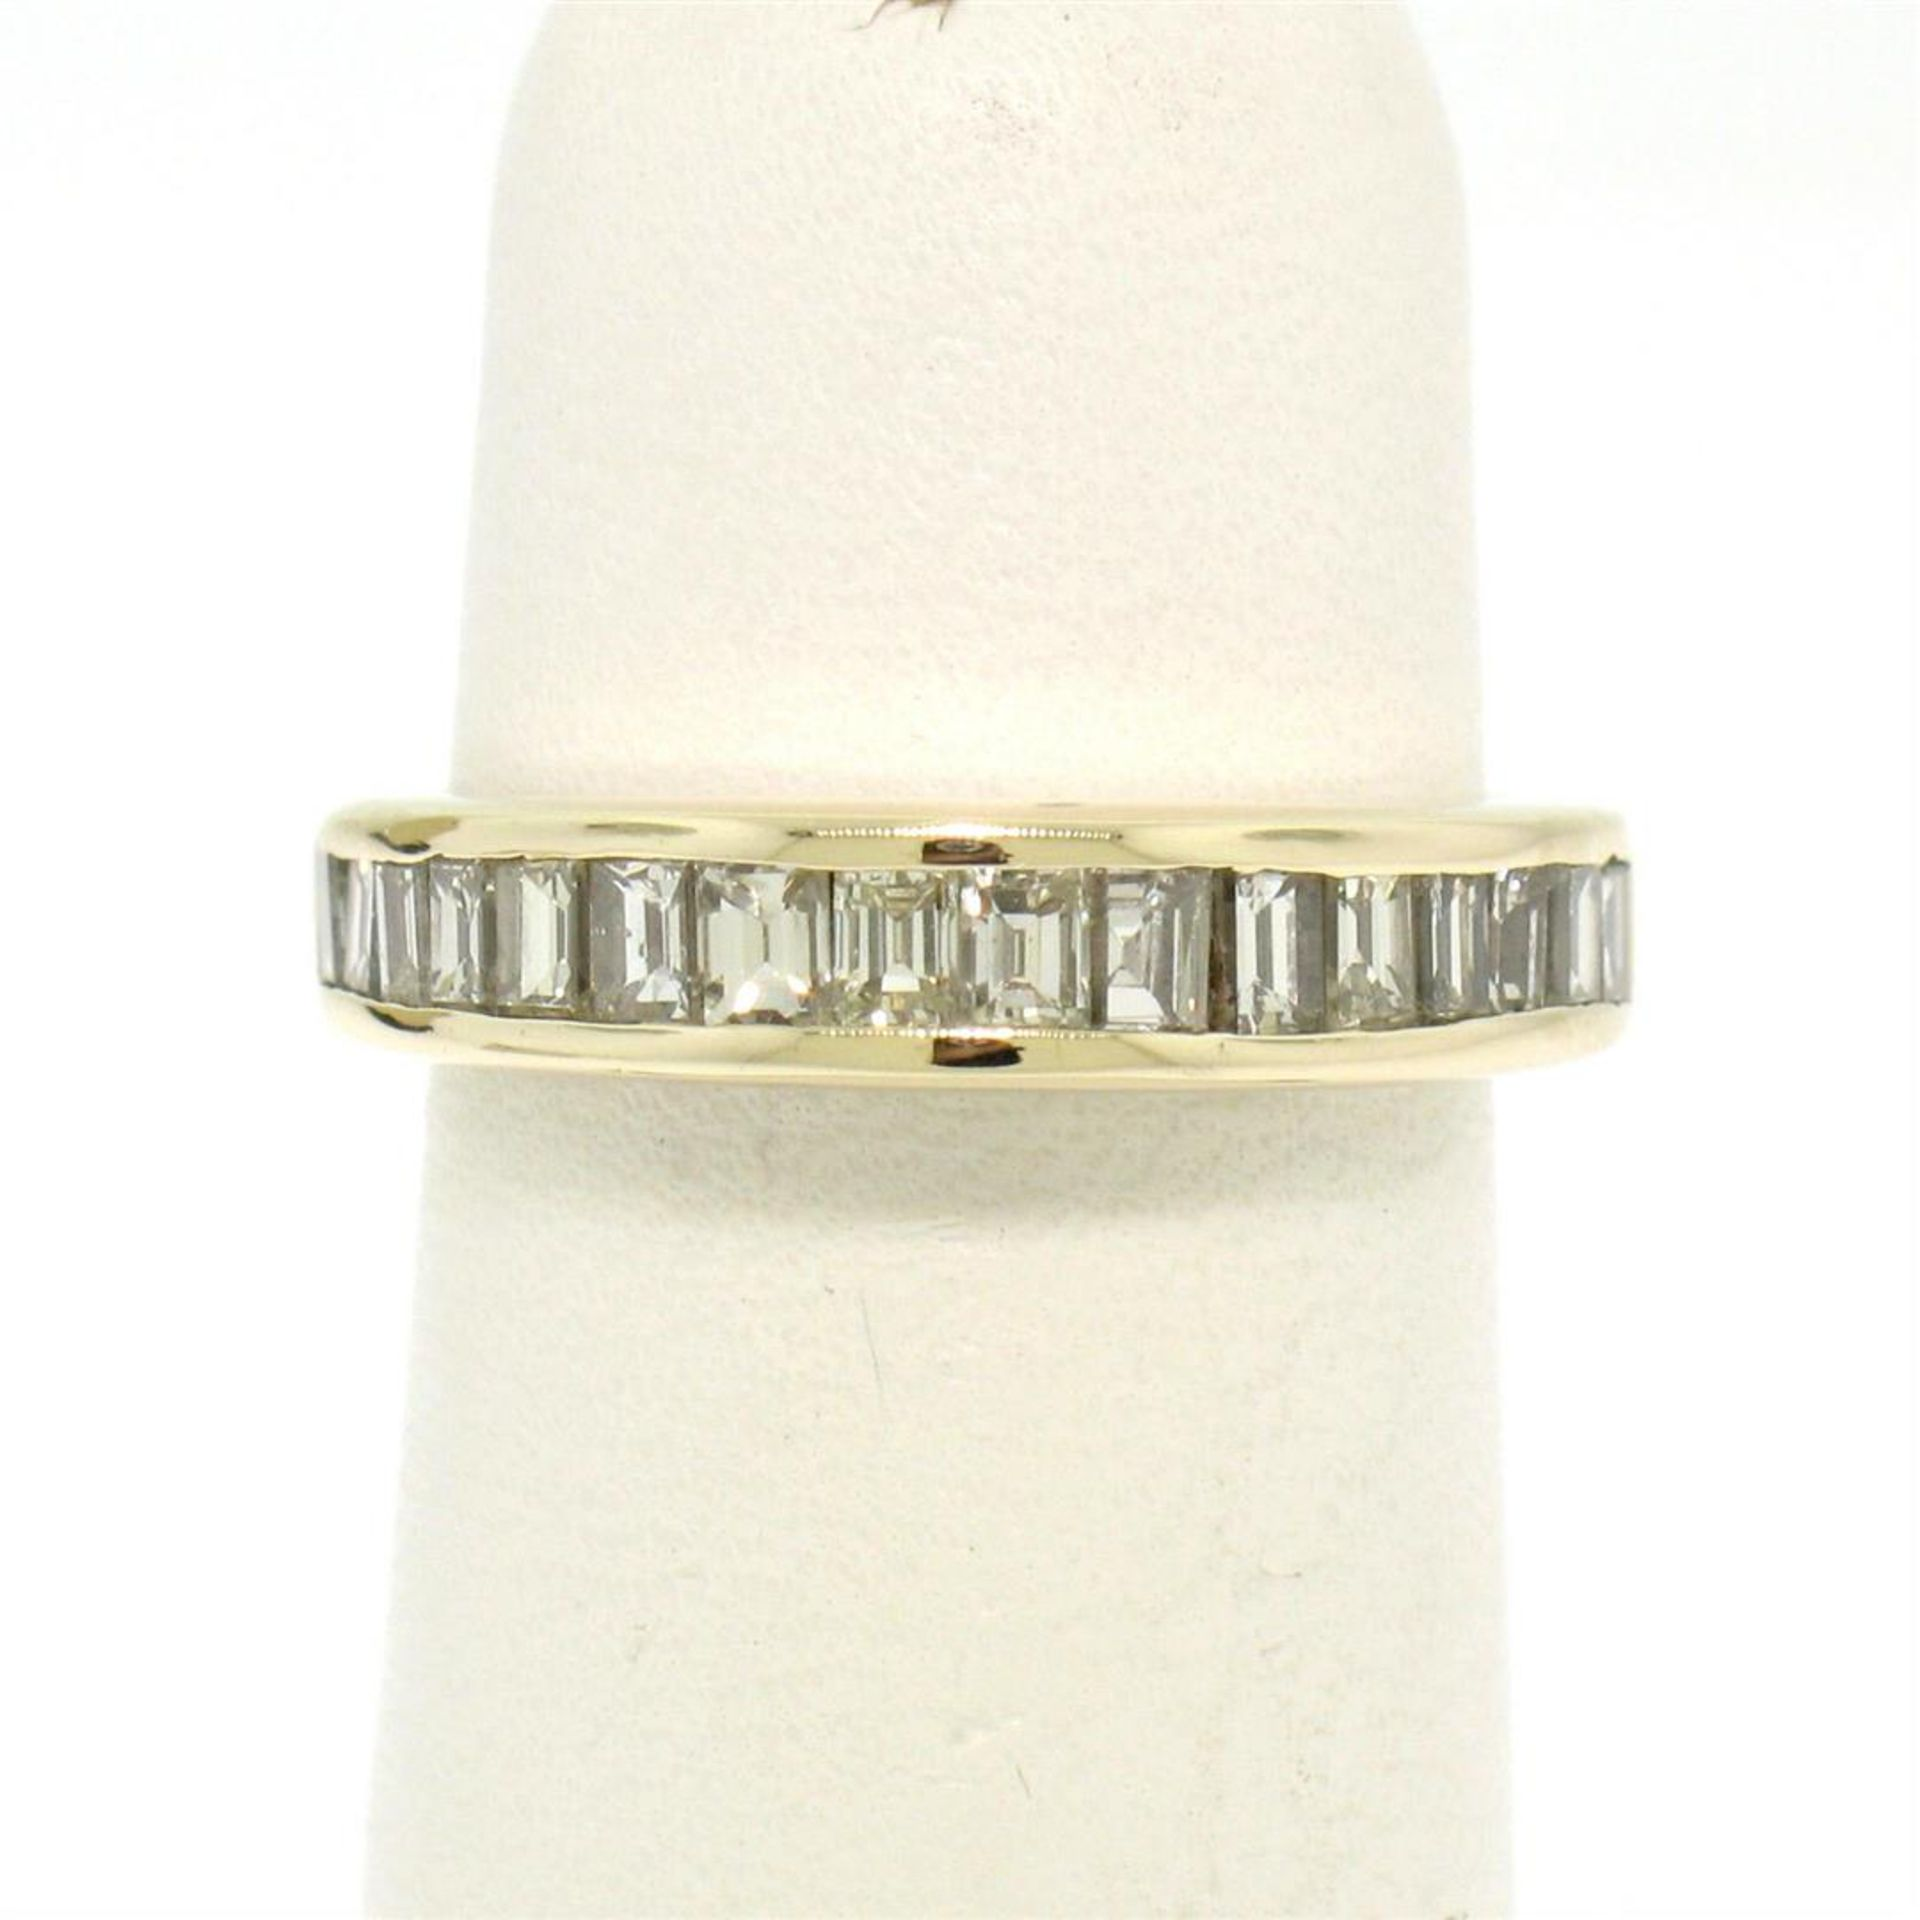 14kt Yellow Gold 1.00 ctw Baguette Diamond Channel Domed Wedding Band Ring - Image 3 of 9